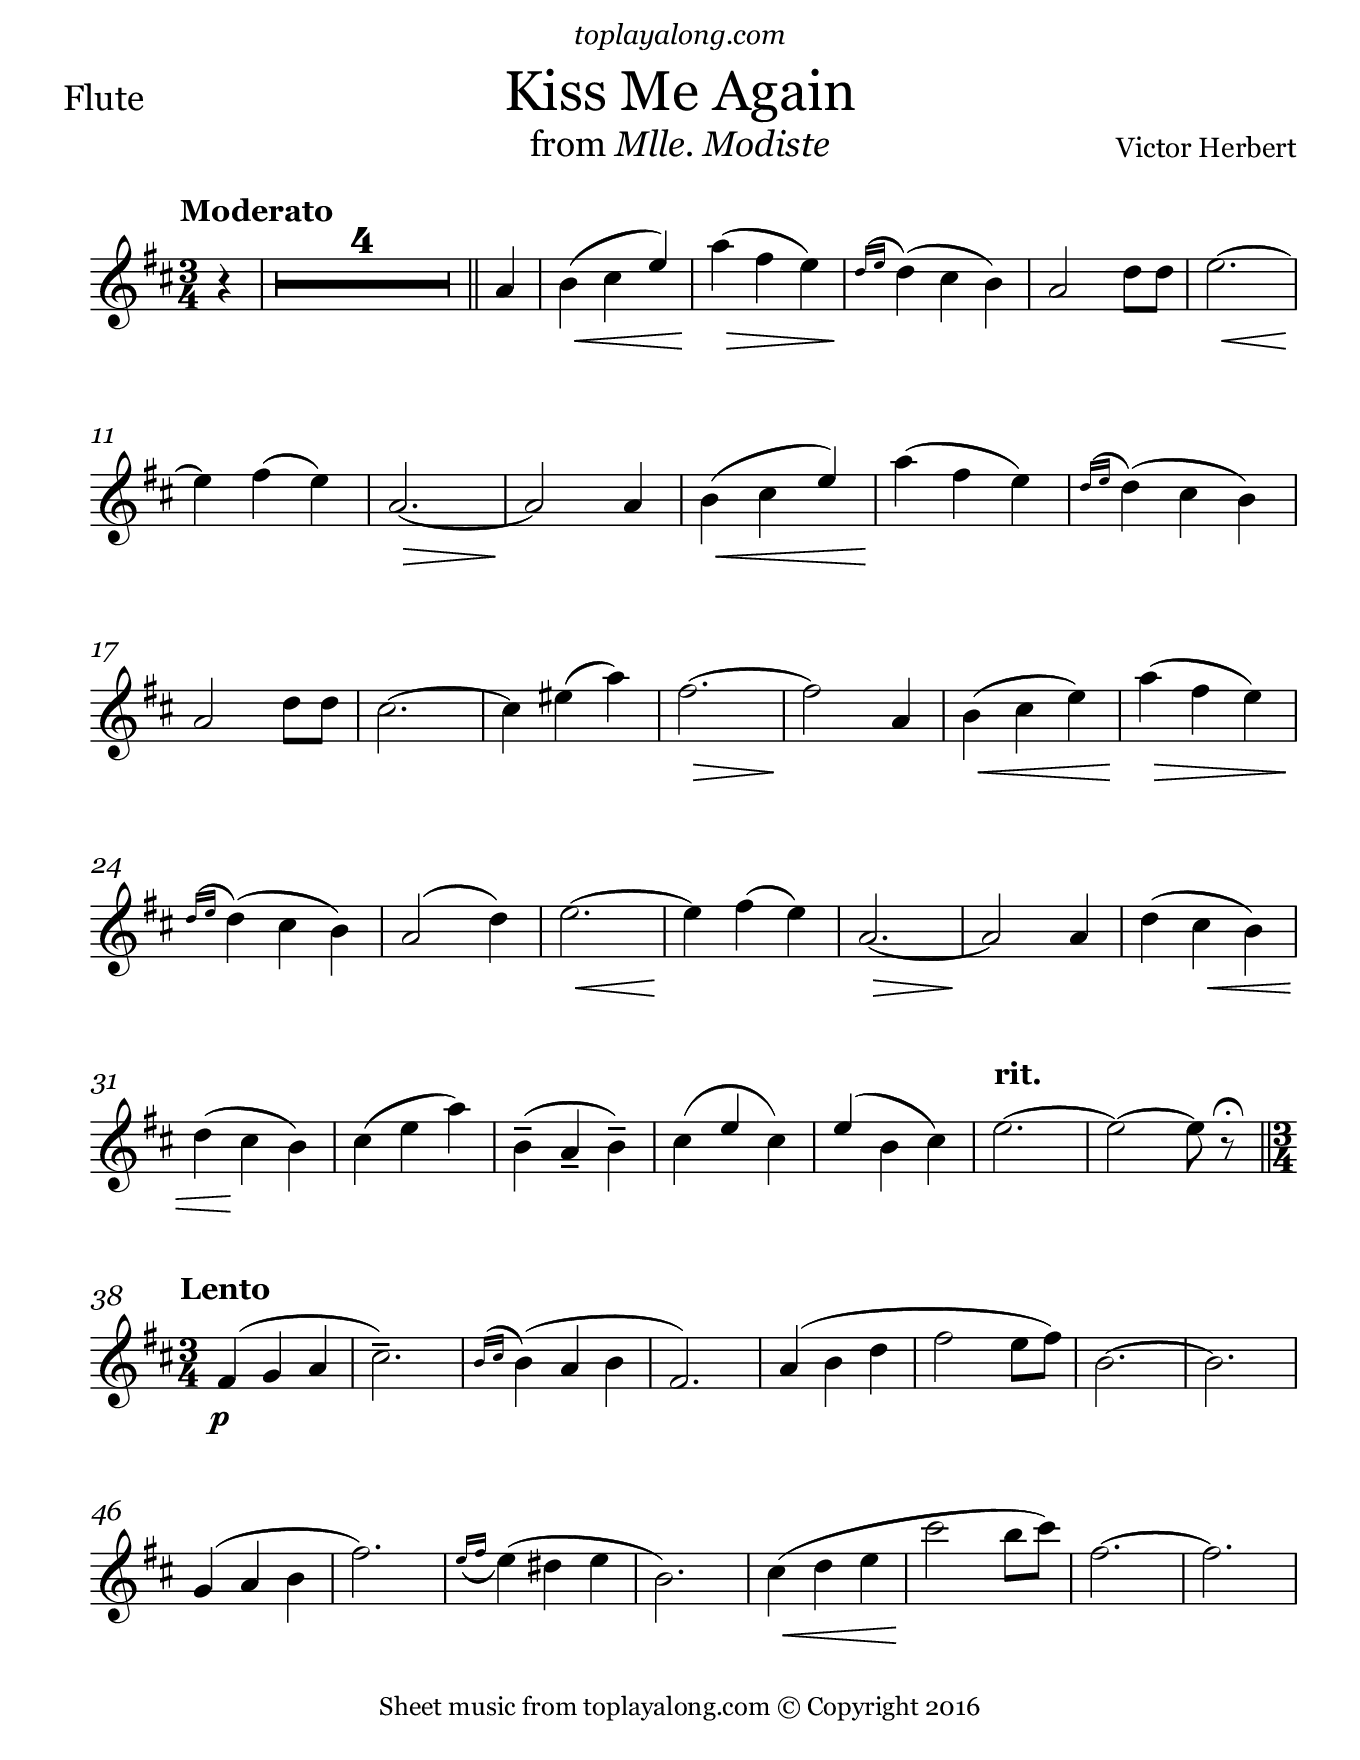 Kiss Me Again from Mlle. Modiste by Herbert. Sheet music for Flute, page 1.